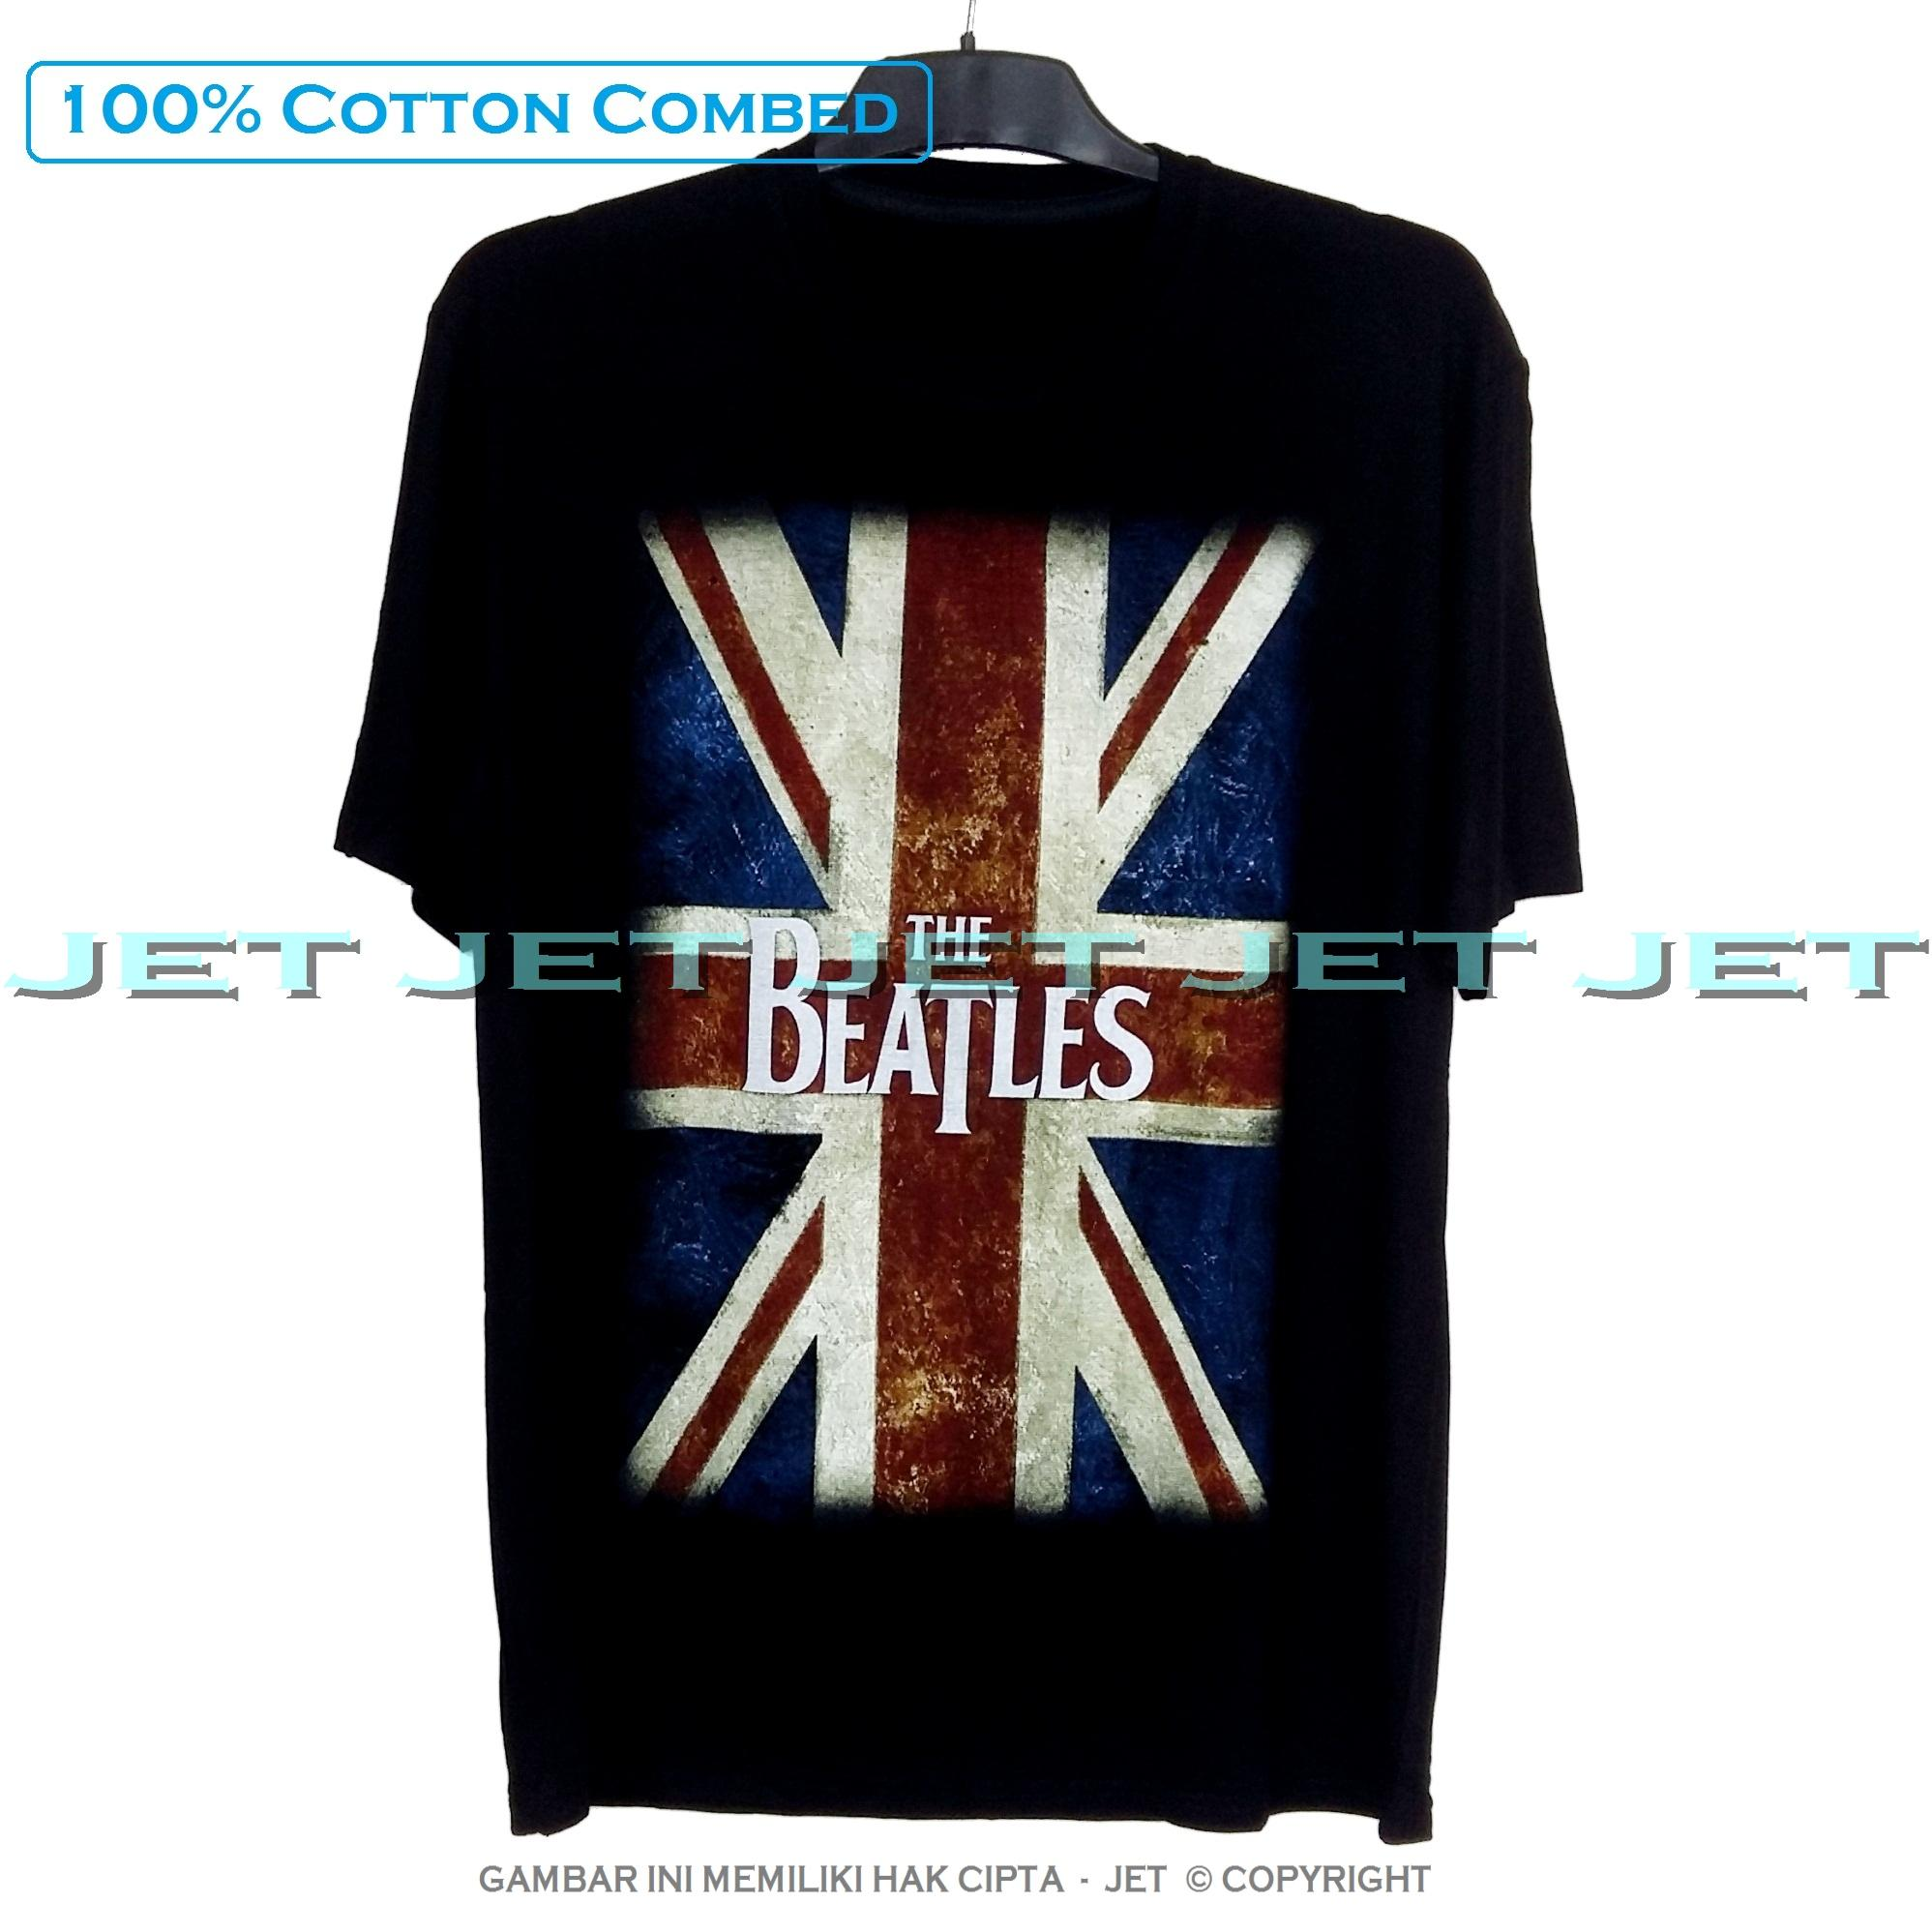 Spectral - BENDERA INGRRIS 100% Soft Cotton Combed 30s Kaos Distro Fashion T -Shirt. Brands: Jet